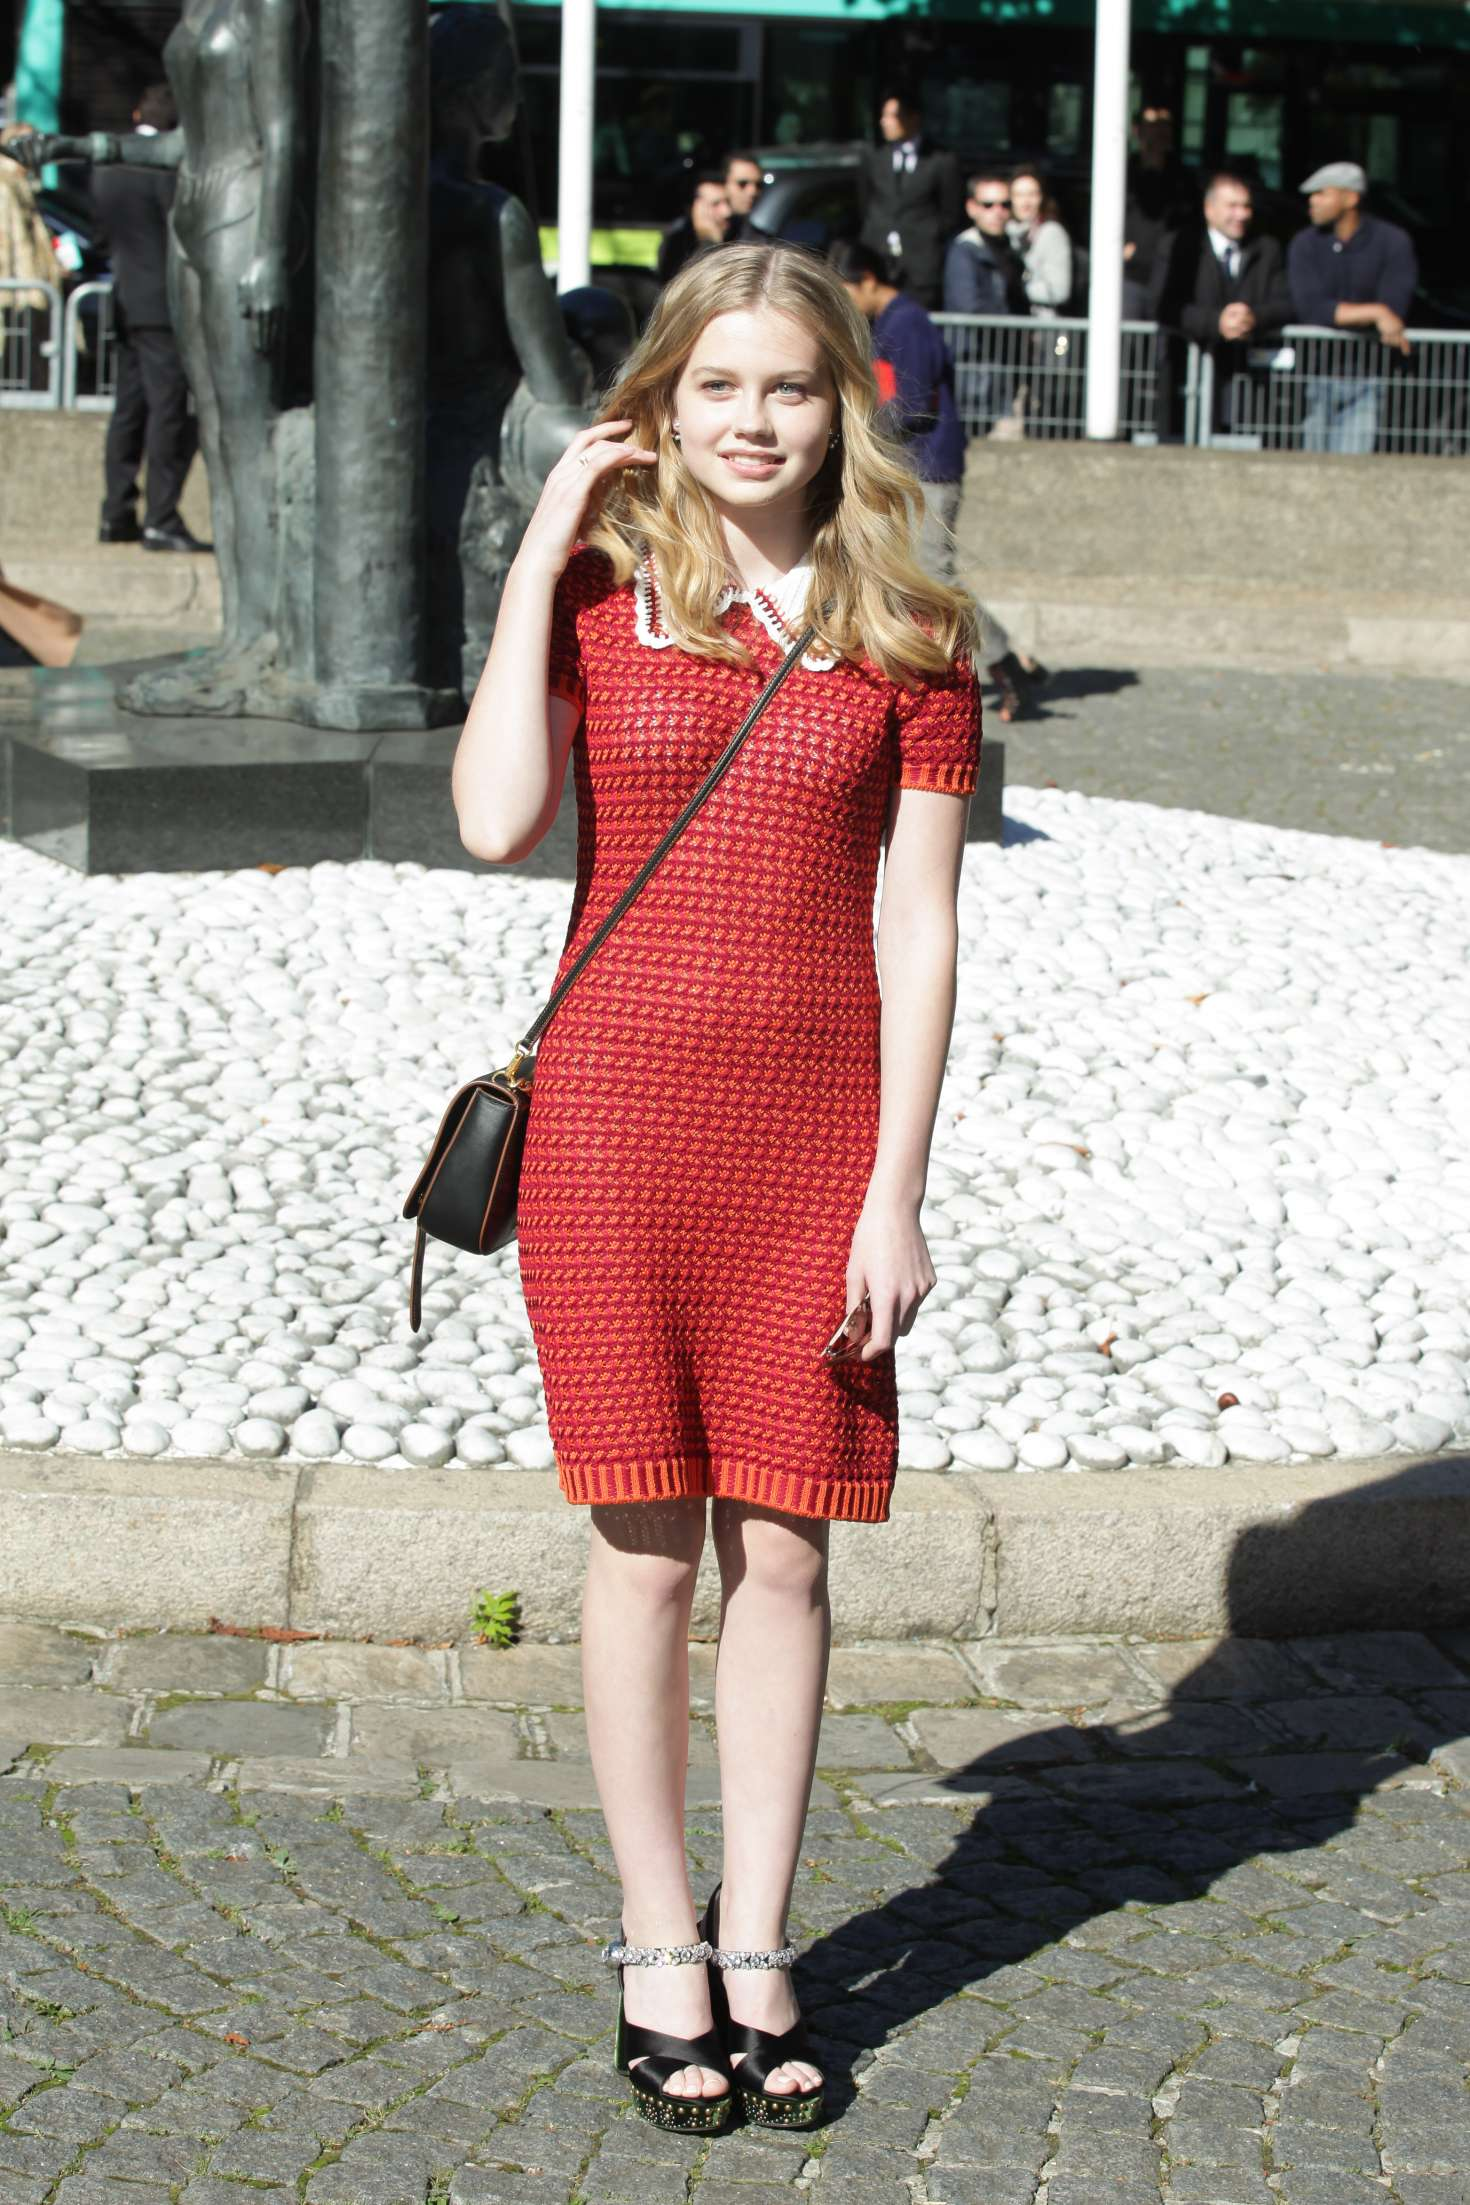 Forum on this topic: Amanda Hearst, angourie-rice/